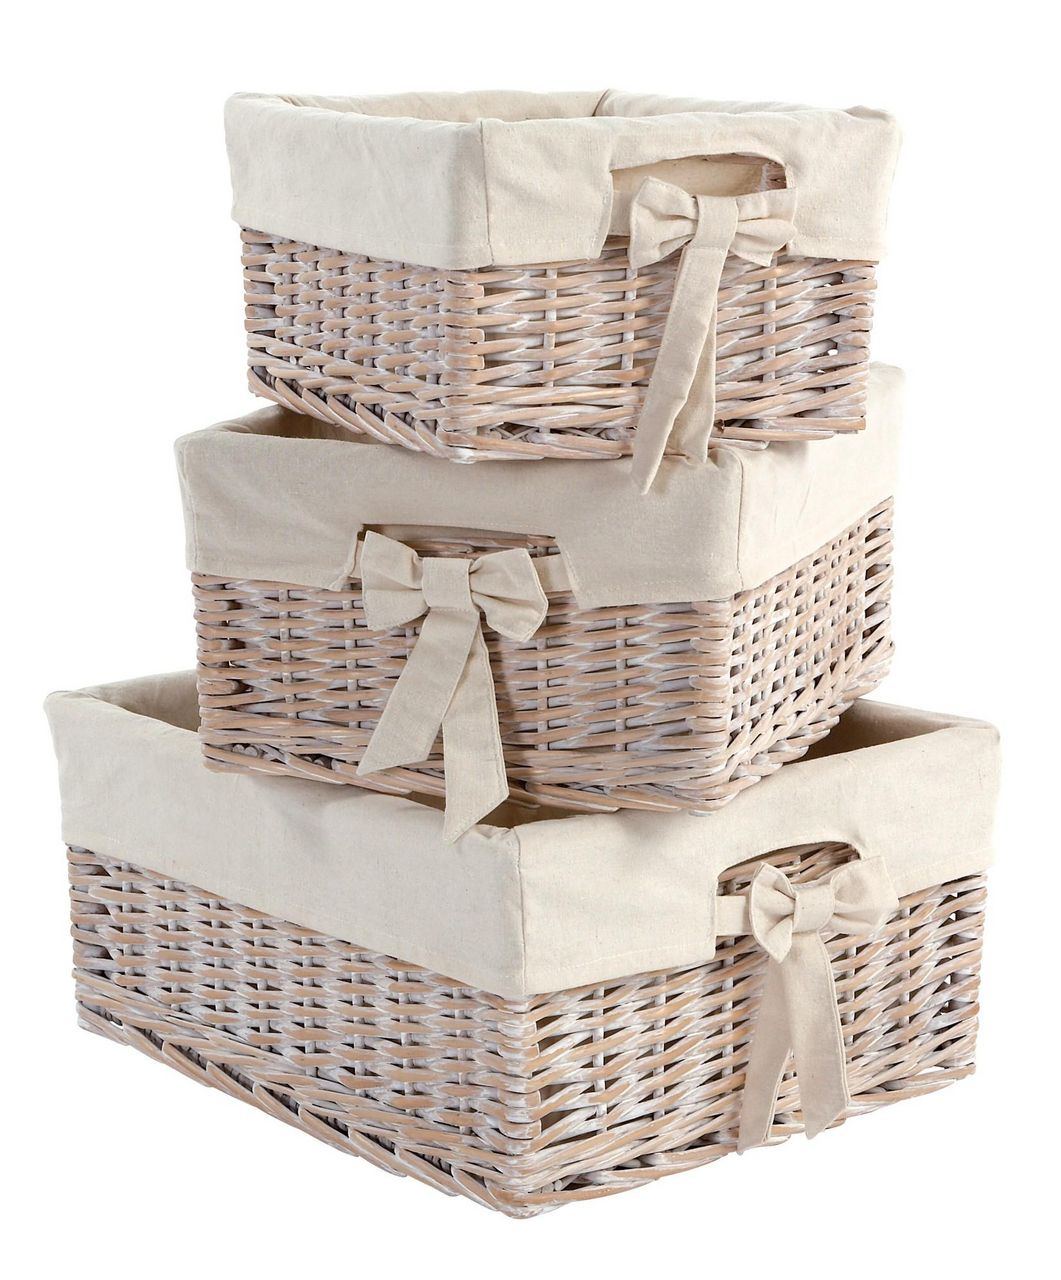 Storage Baskets Set Of 3 In White Wash Nursery Accessories Mamas Papas